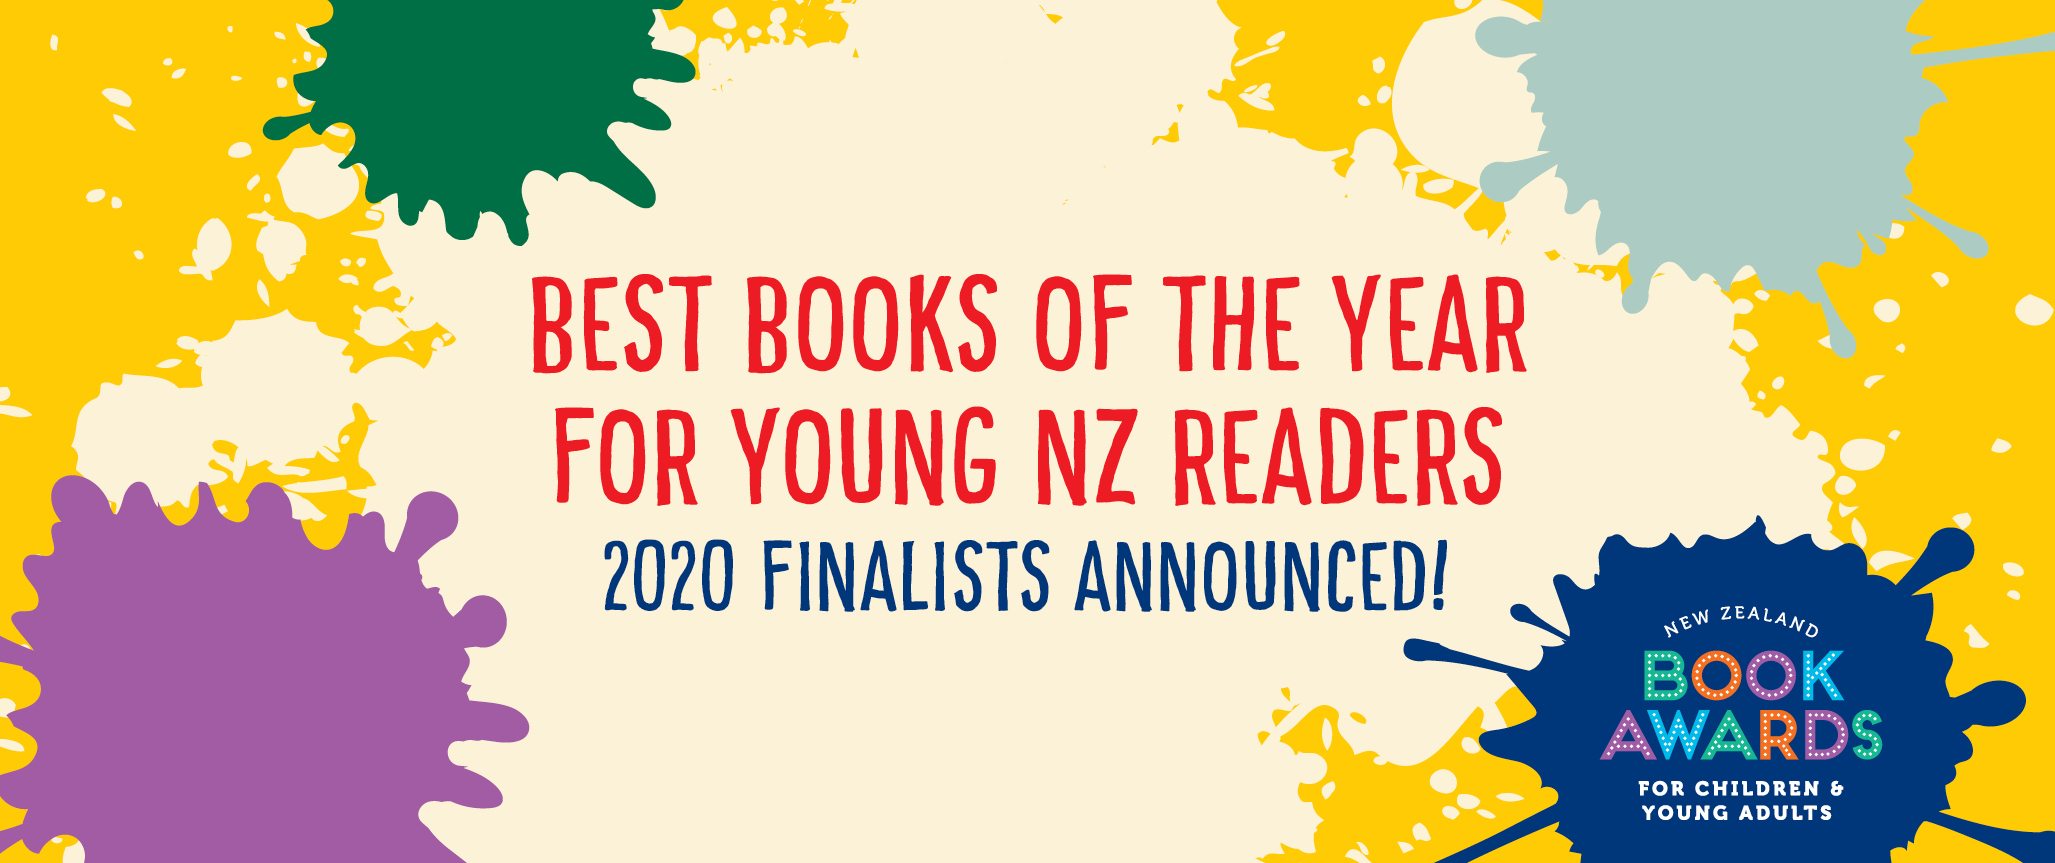 Best books of the year for young NZ readers - 2020 finalists announced